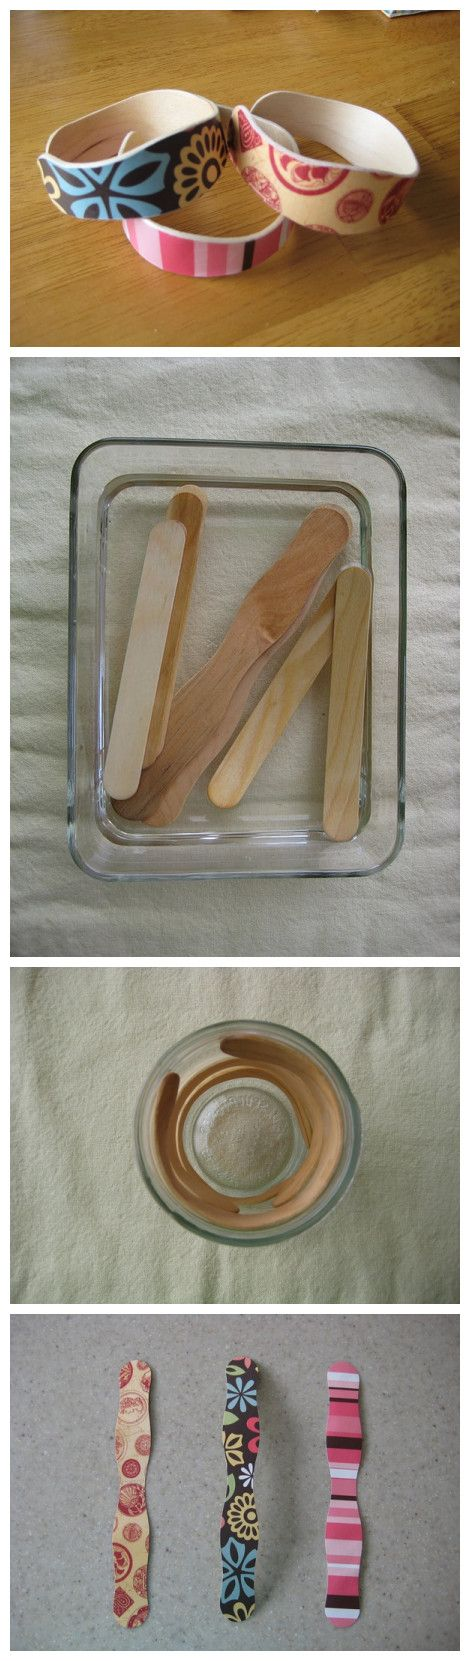 soak popsicle in water to soften, shape into bracelet, let dry, then decorate with paint, stamps, glitter, etc...